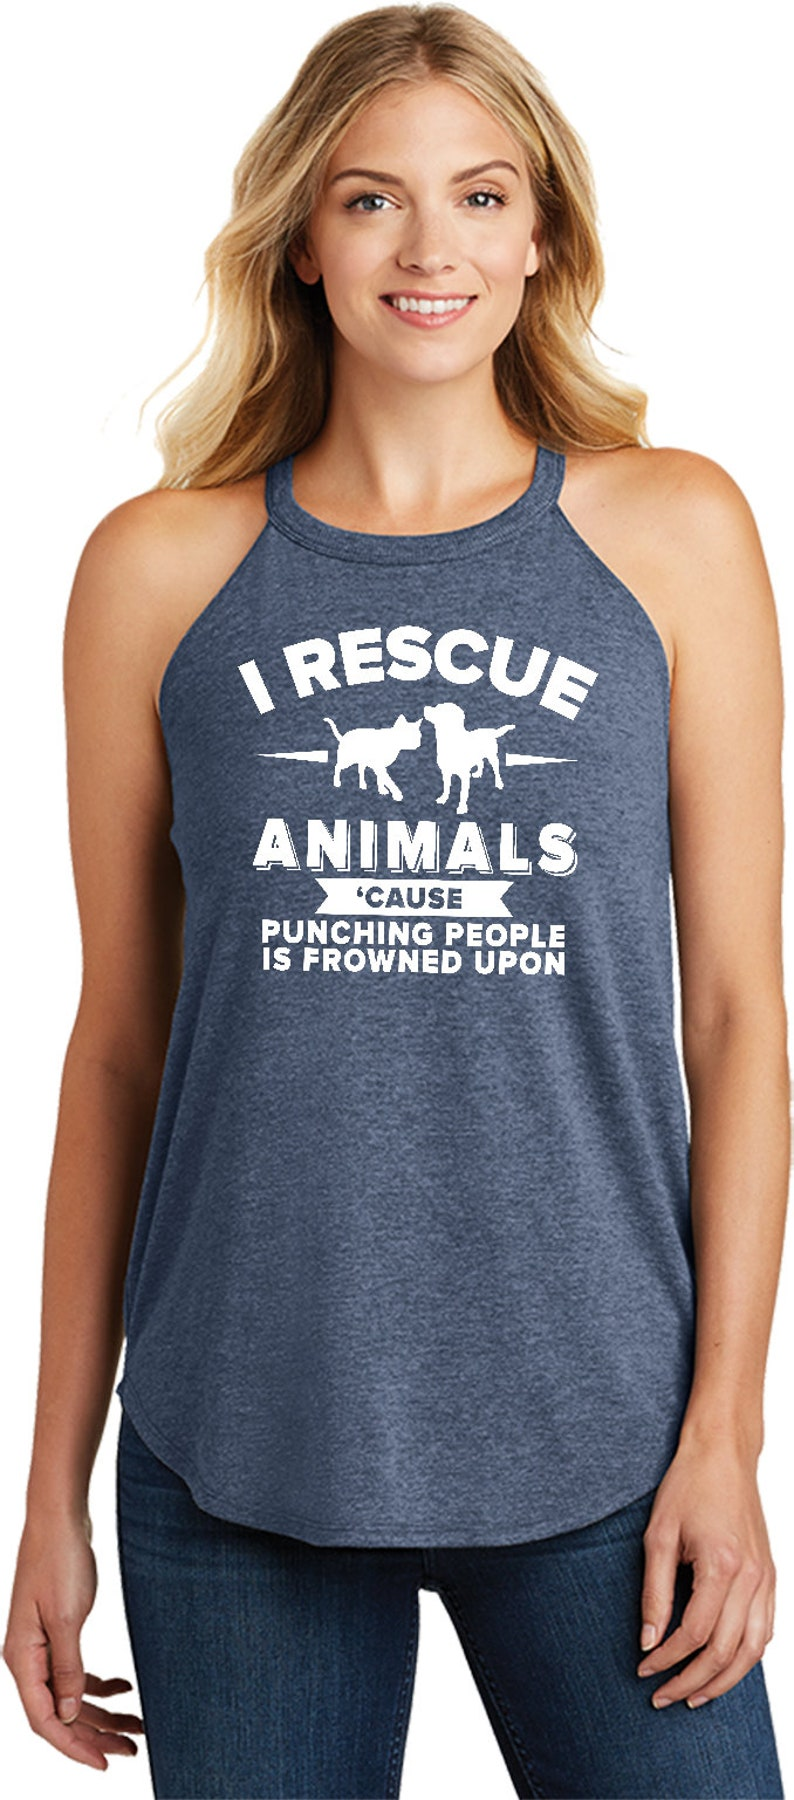 Ladies I Rescue Animals Cause Punching People is Frowned Upon Tri Blend Rocker Tank Top RESCUE-DT137L